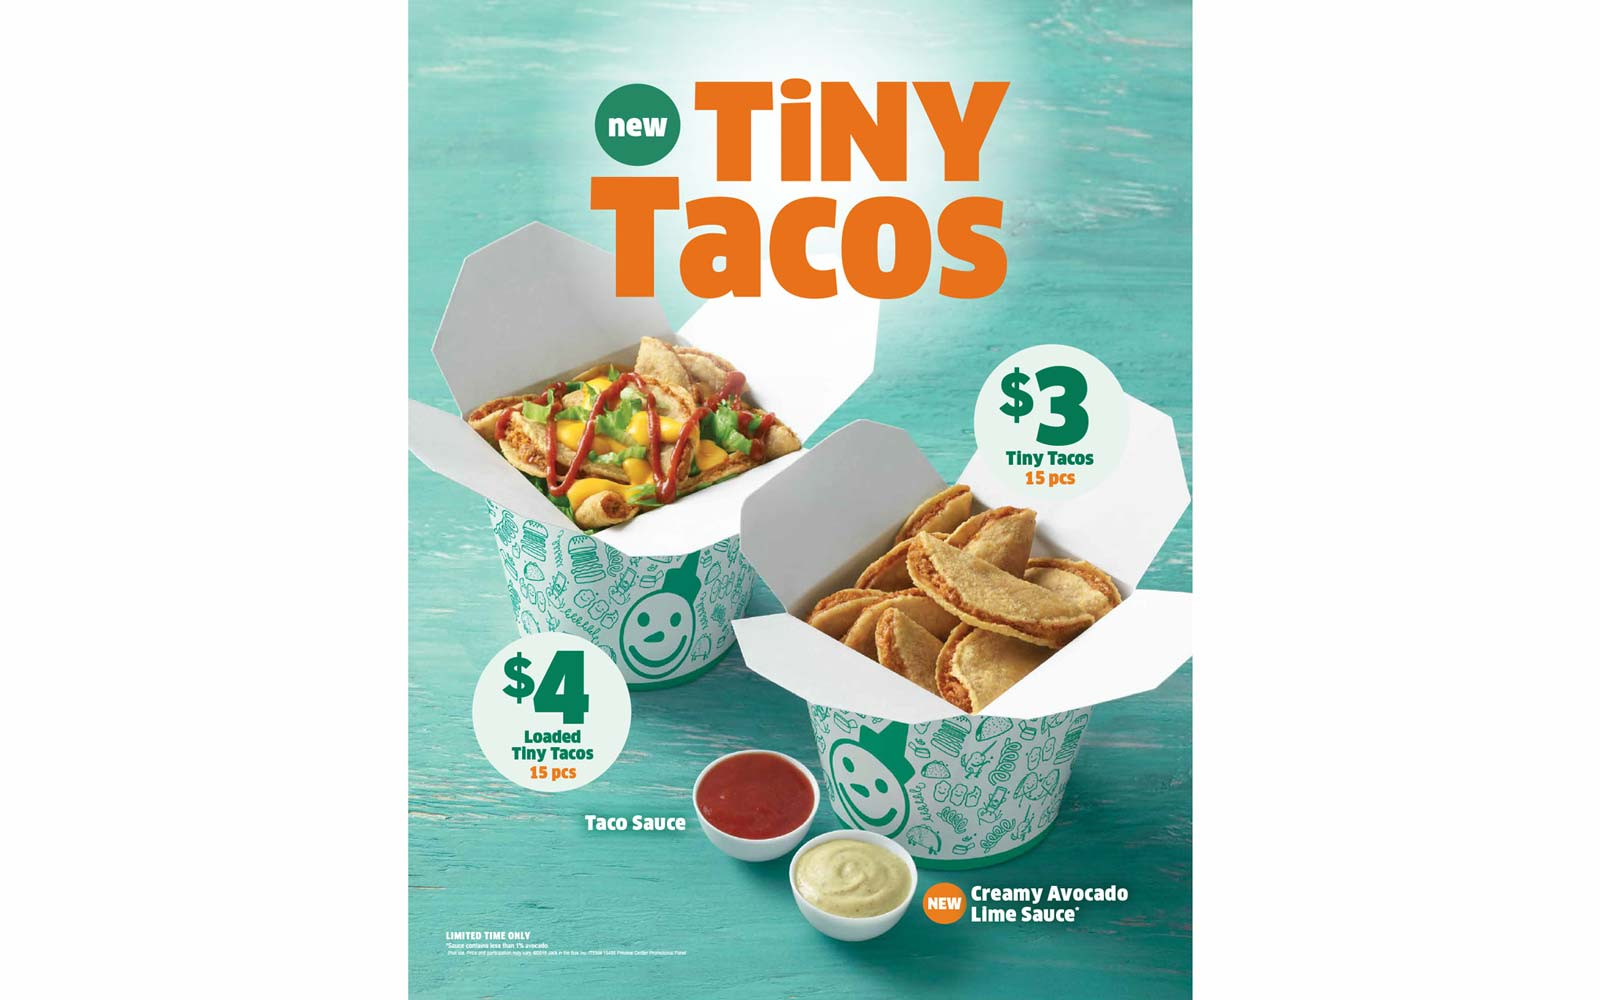 Jack in the Box Tests Snackable 'Tiny Tacos' in Three Cities